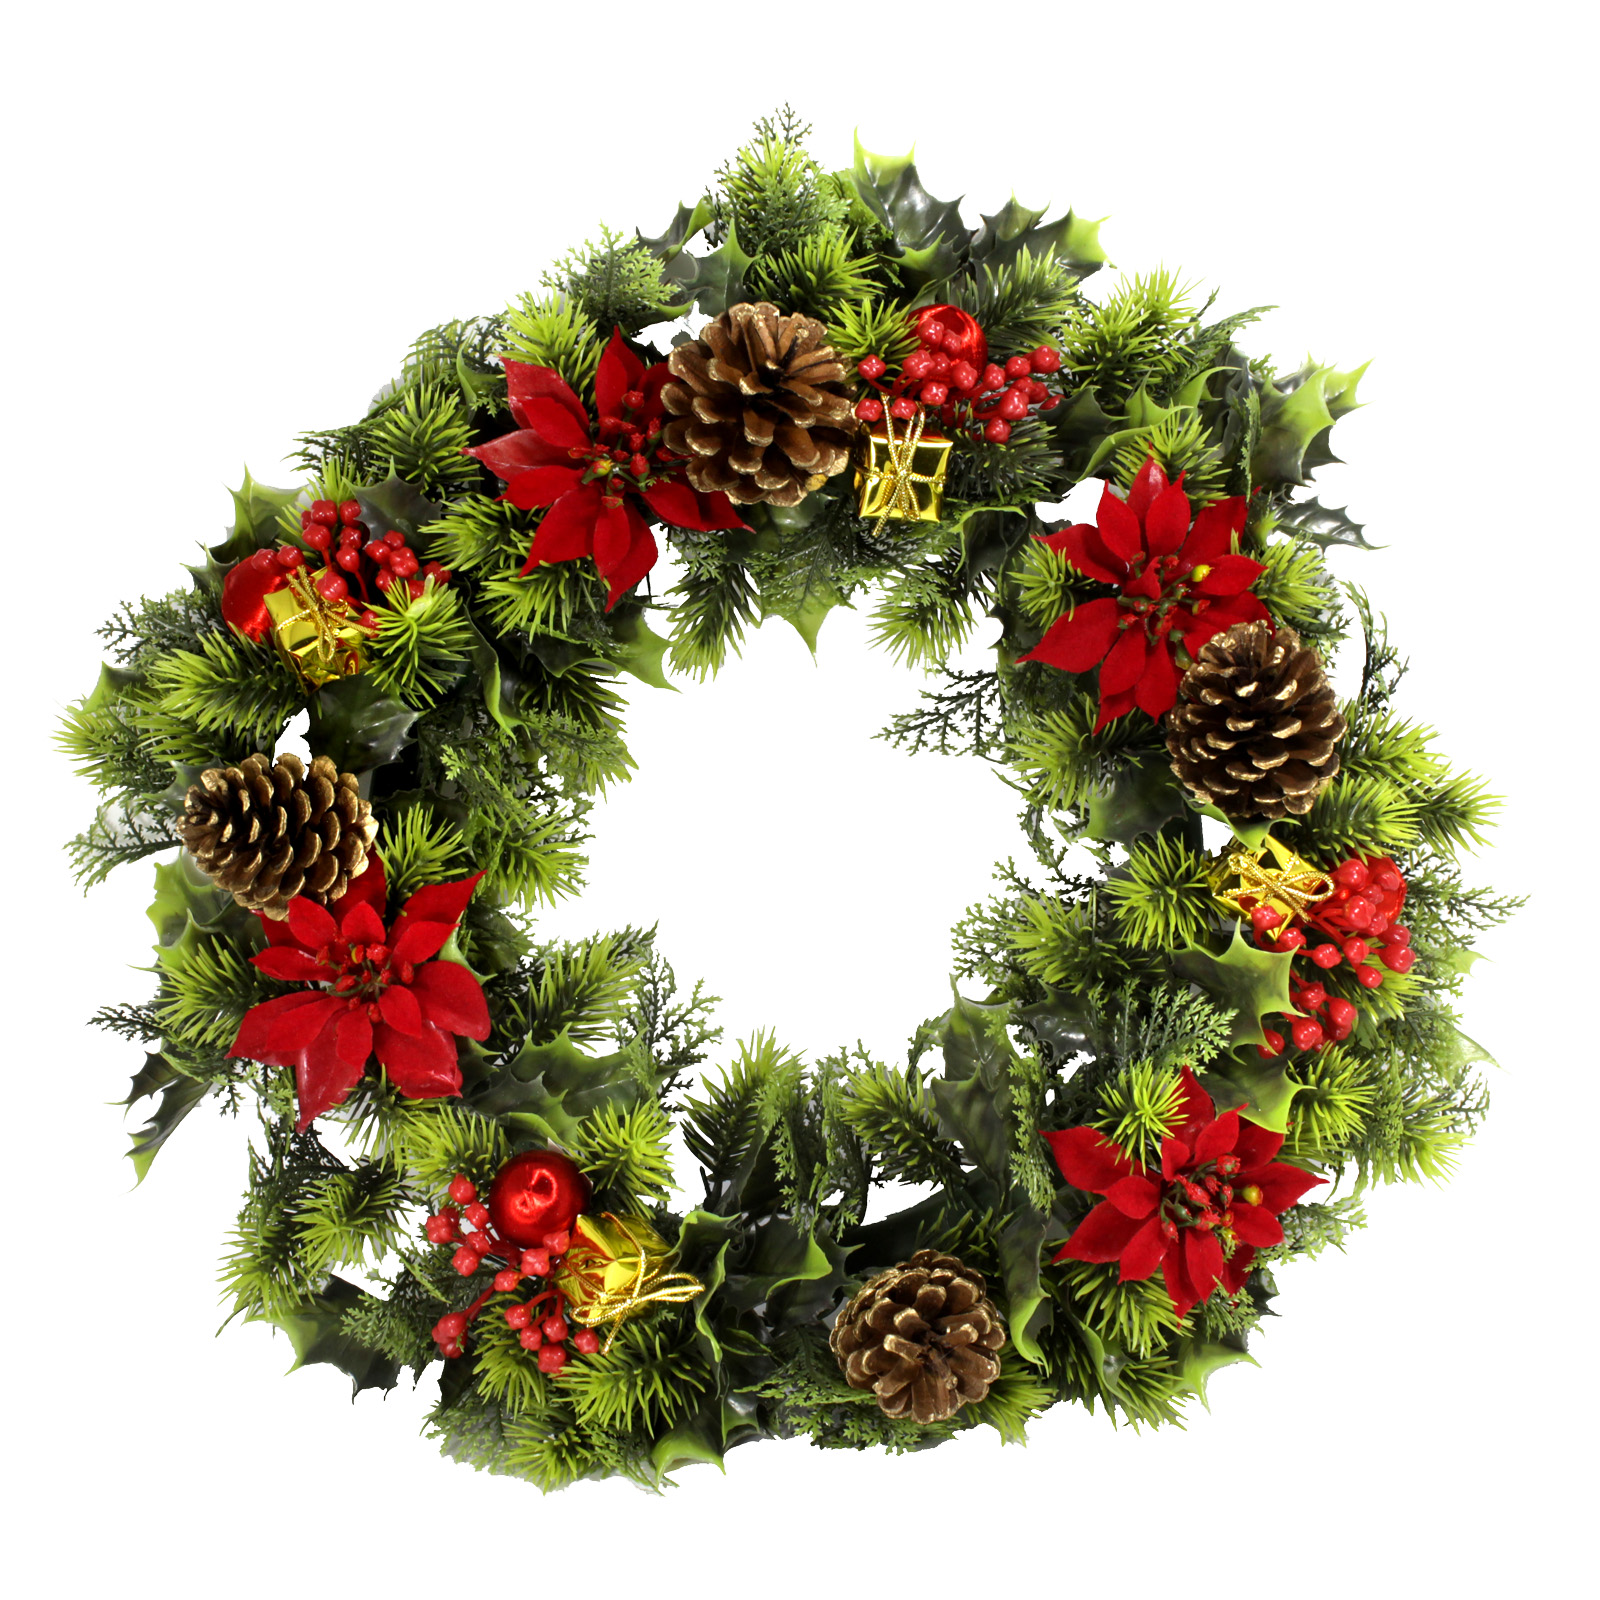 PLASTIC HOLLY WREATH LARGE POINSETTIAS RED 18 INCH